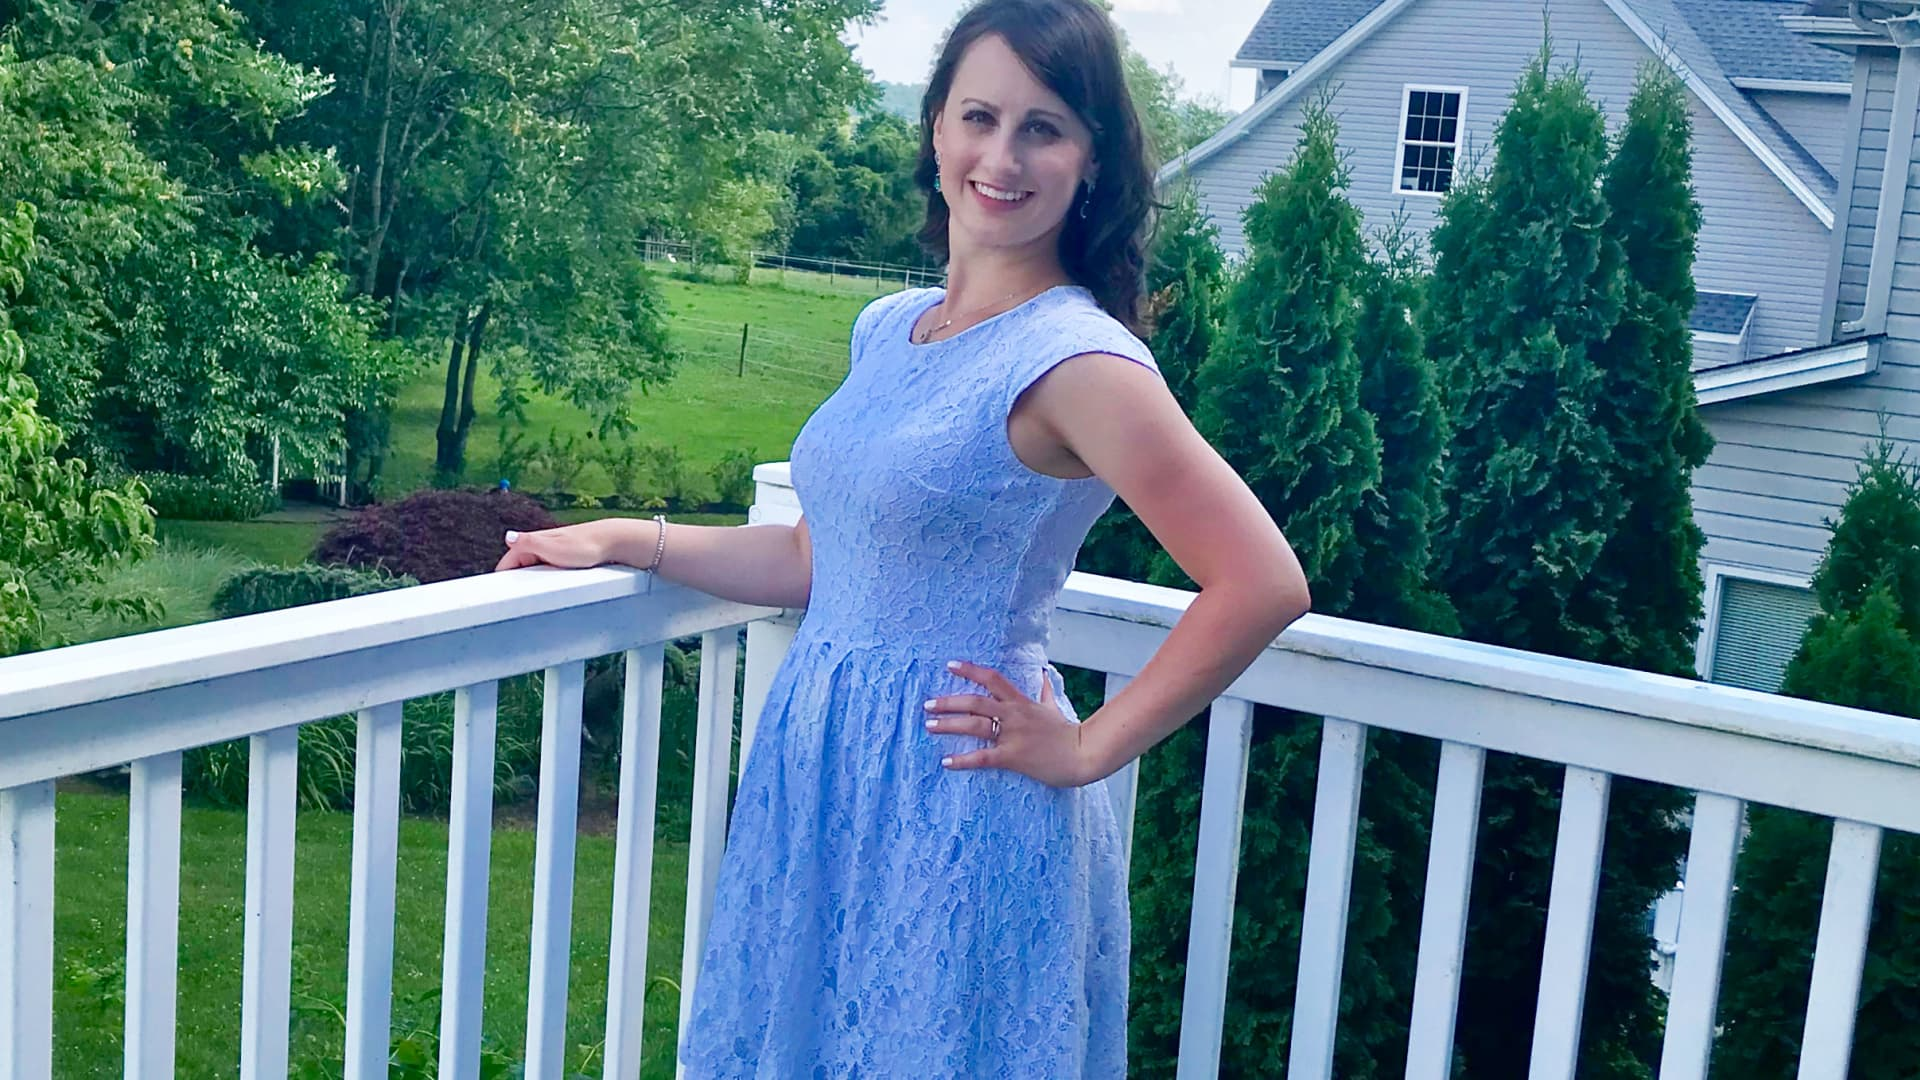 Alexandra Lashner of Bensalem, Pennsylvania, became frustrated after attempting to buy a house this year and decided to postpone homeownership.